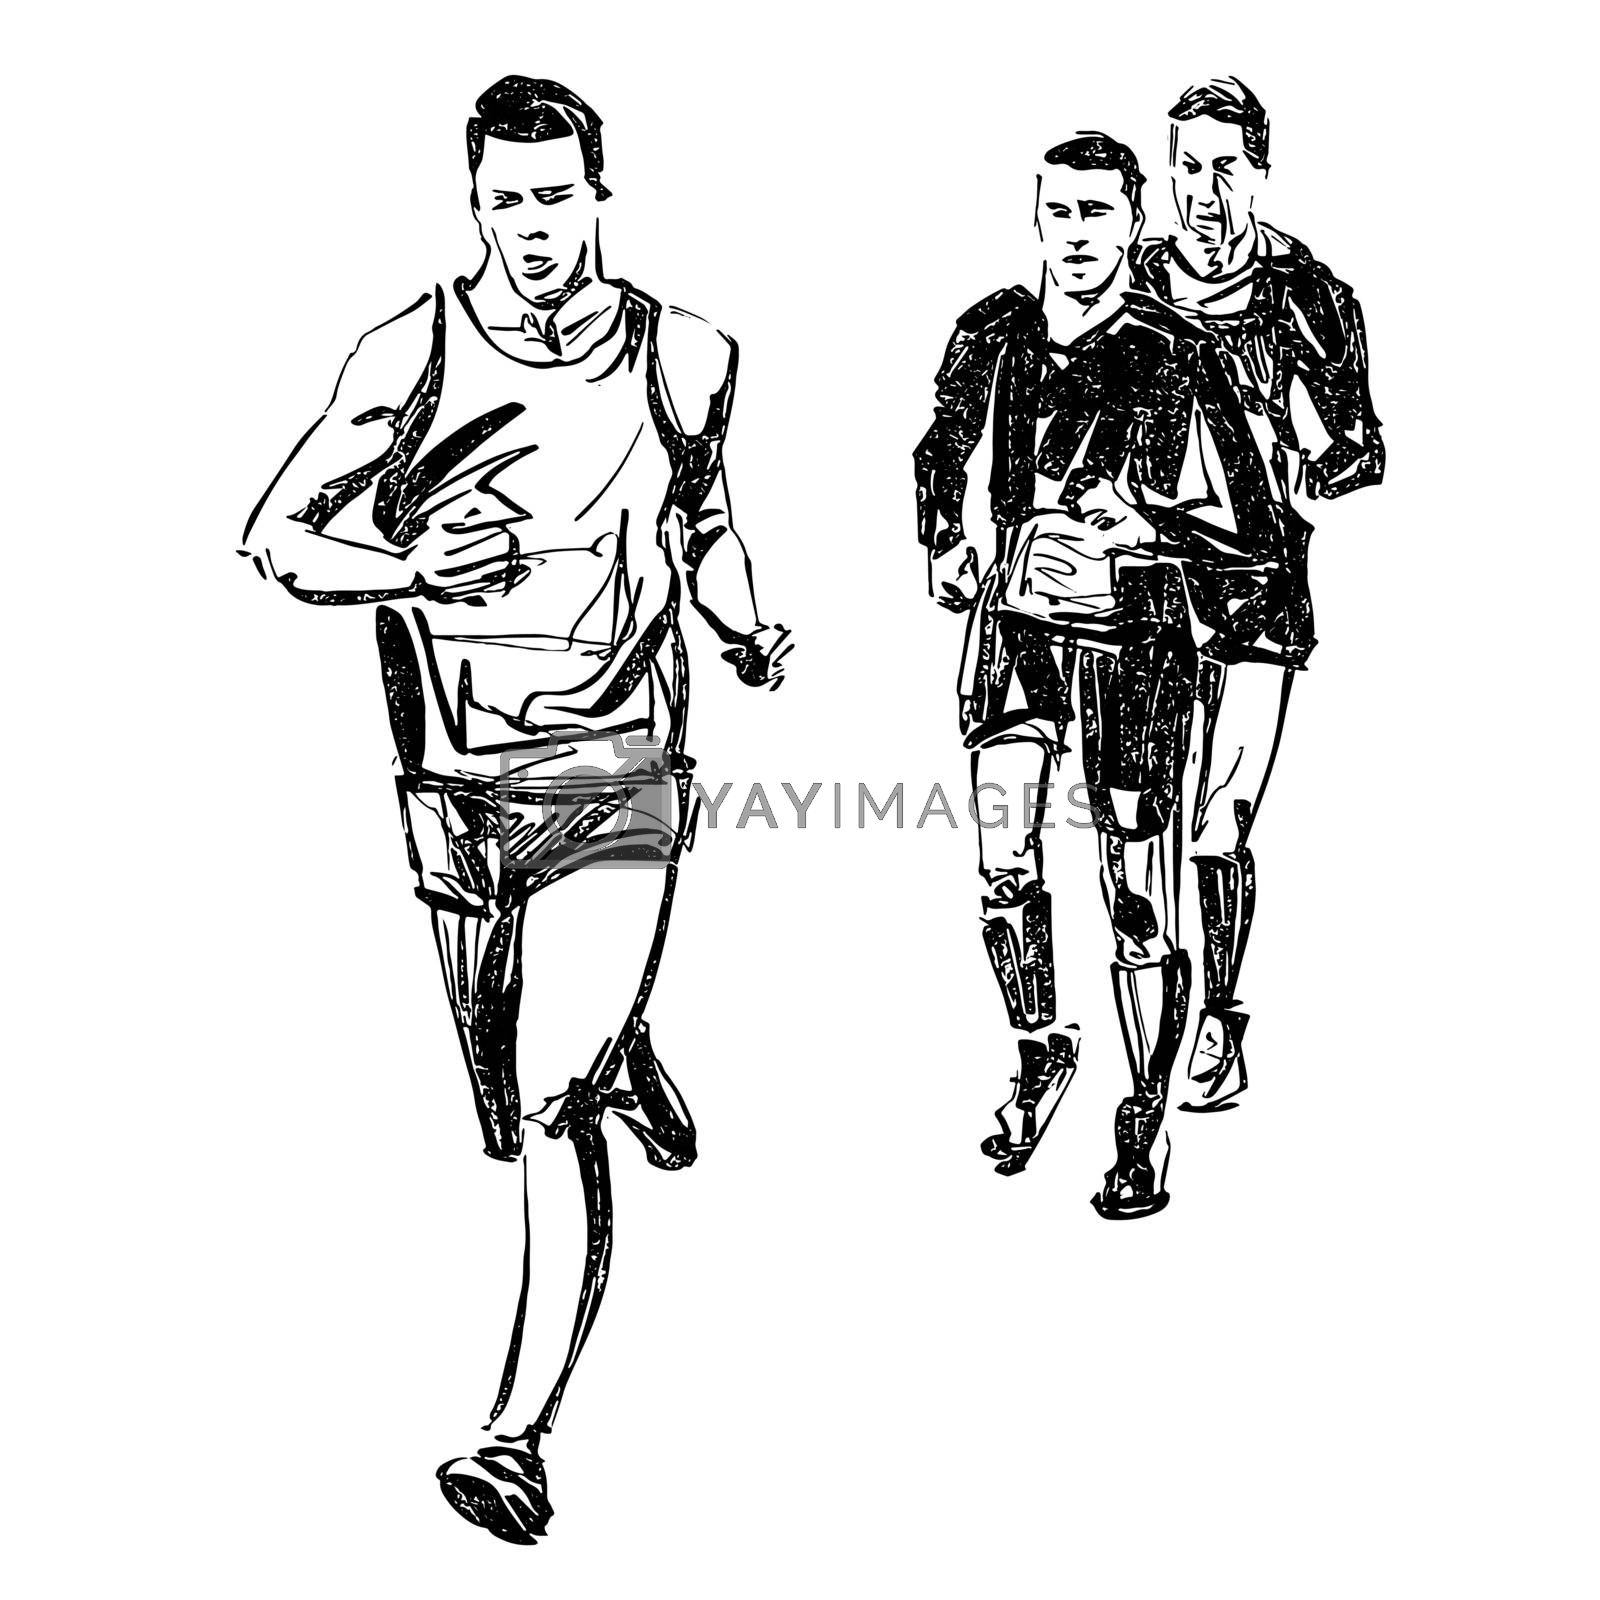 Drawing of the running